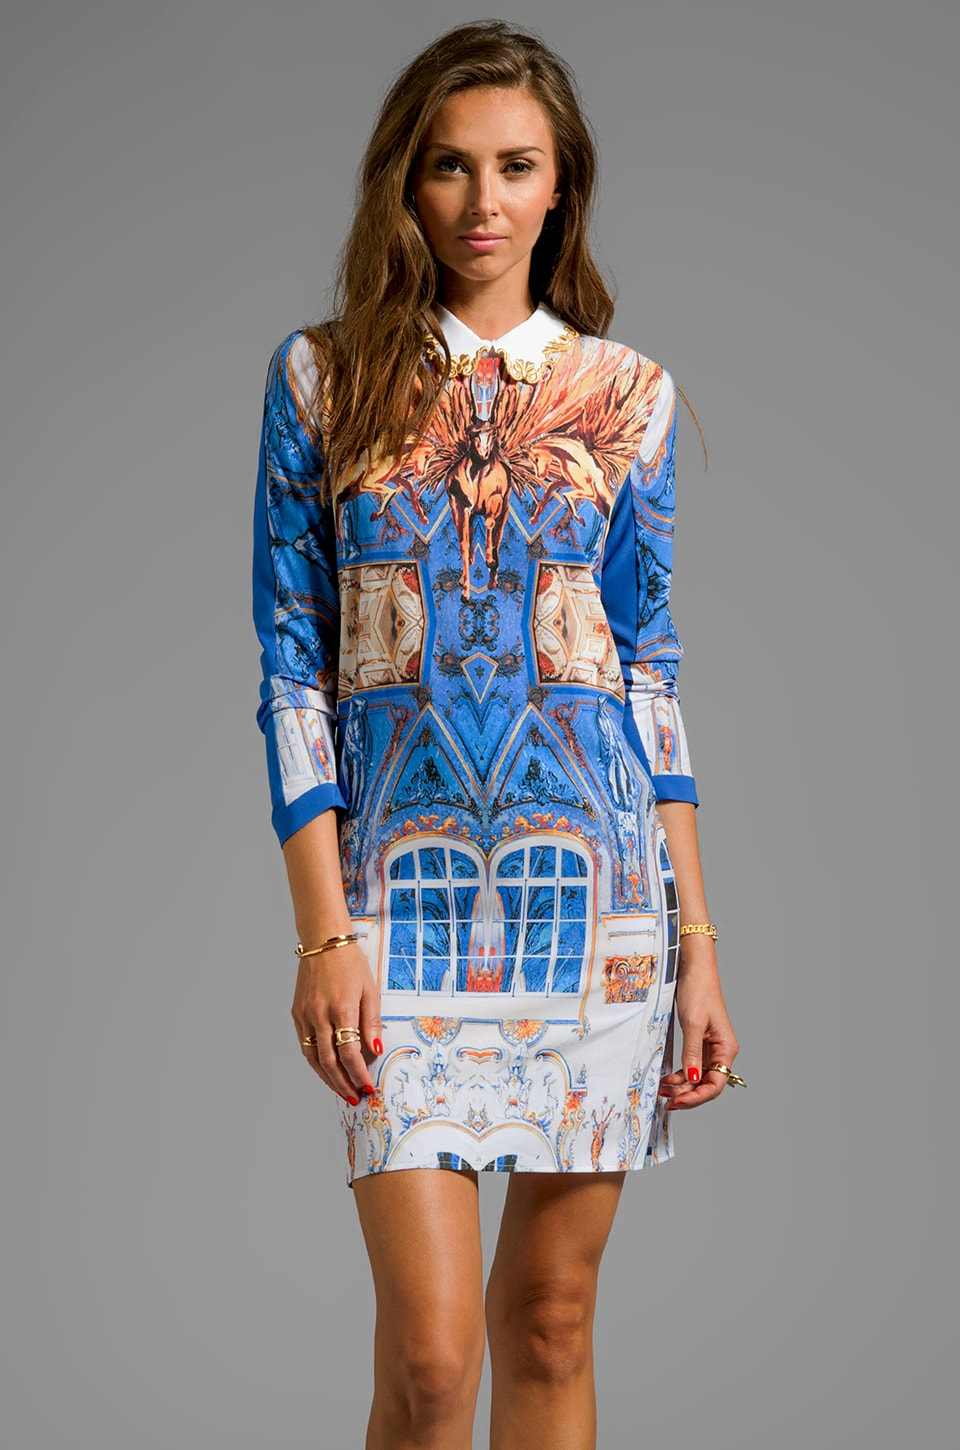 Clover Canyon Pegasus Dress in Multi